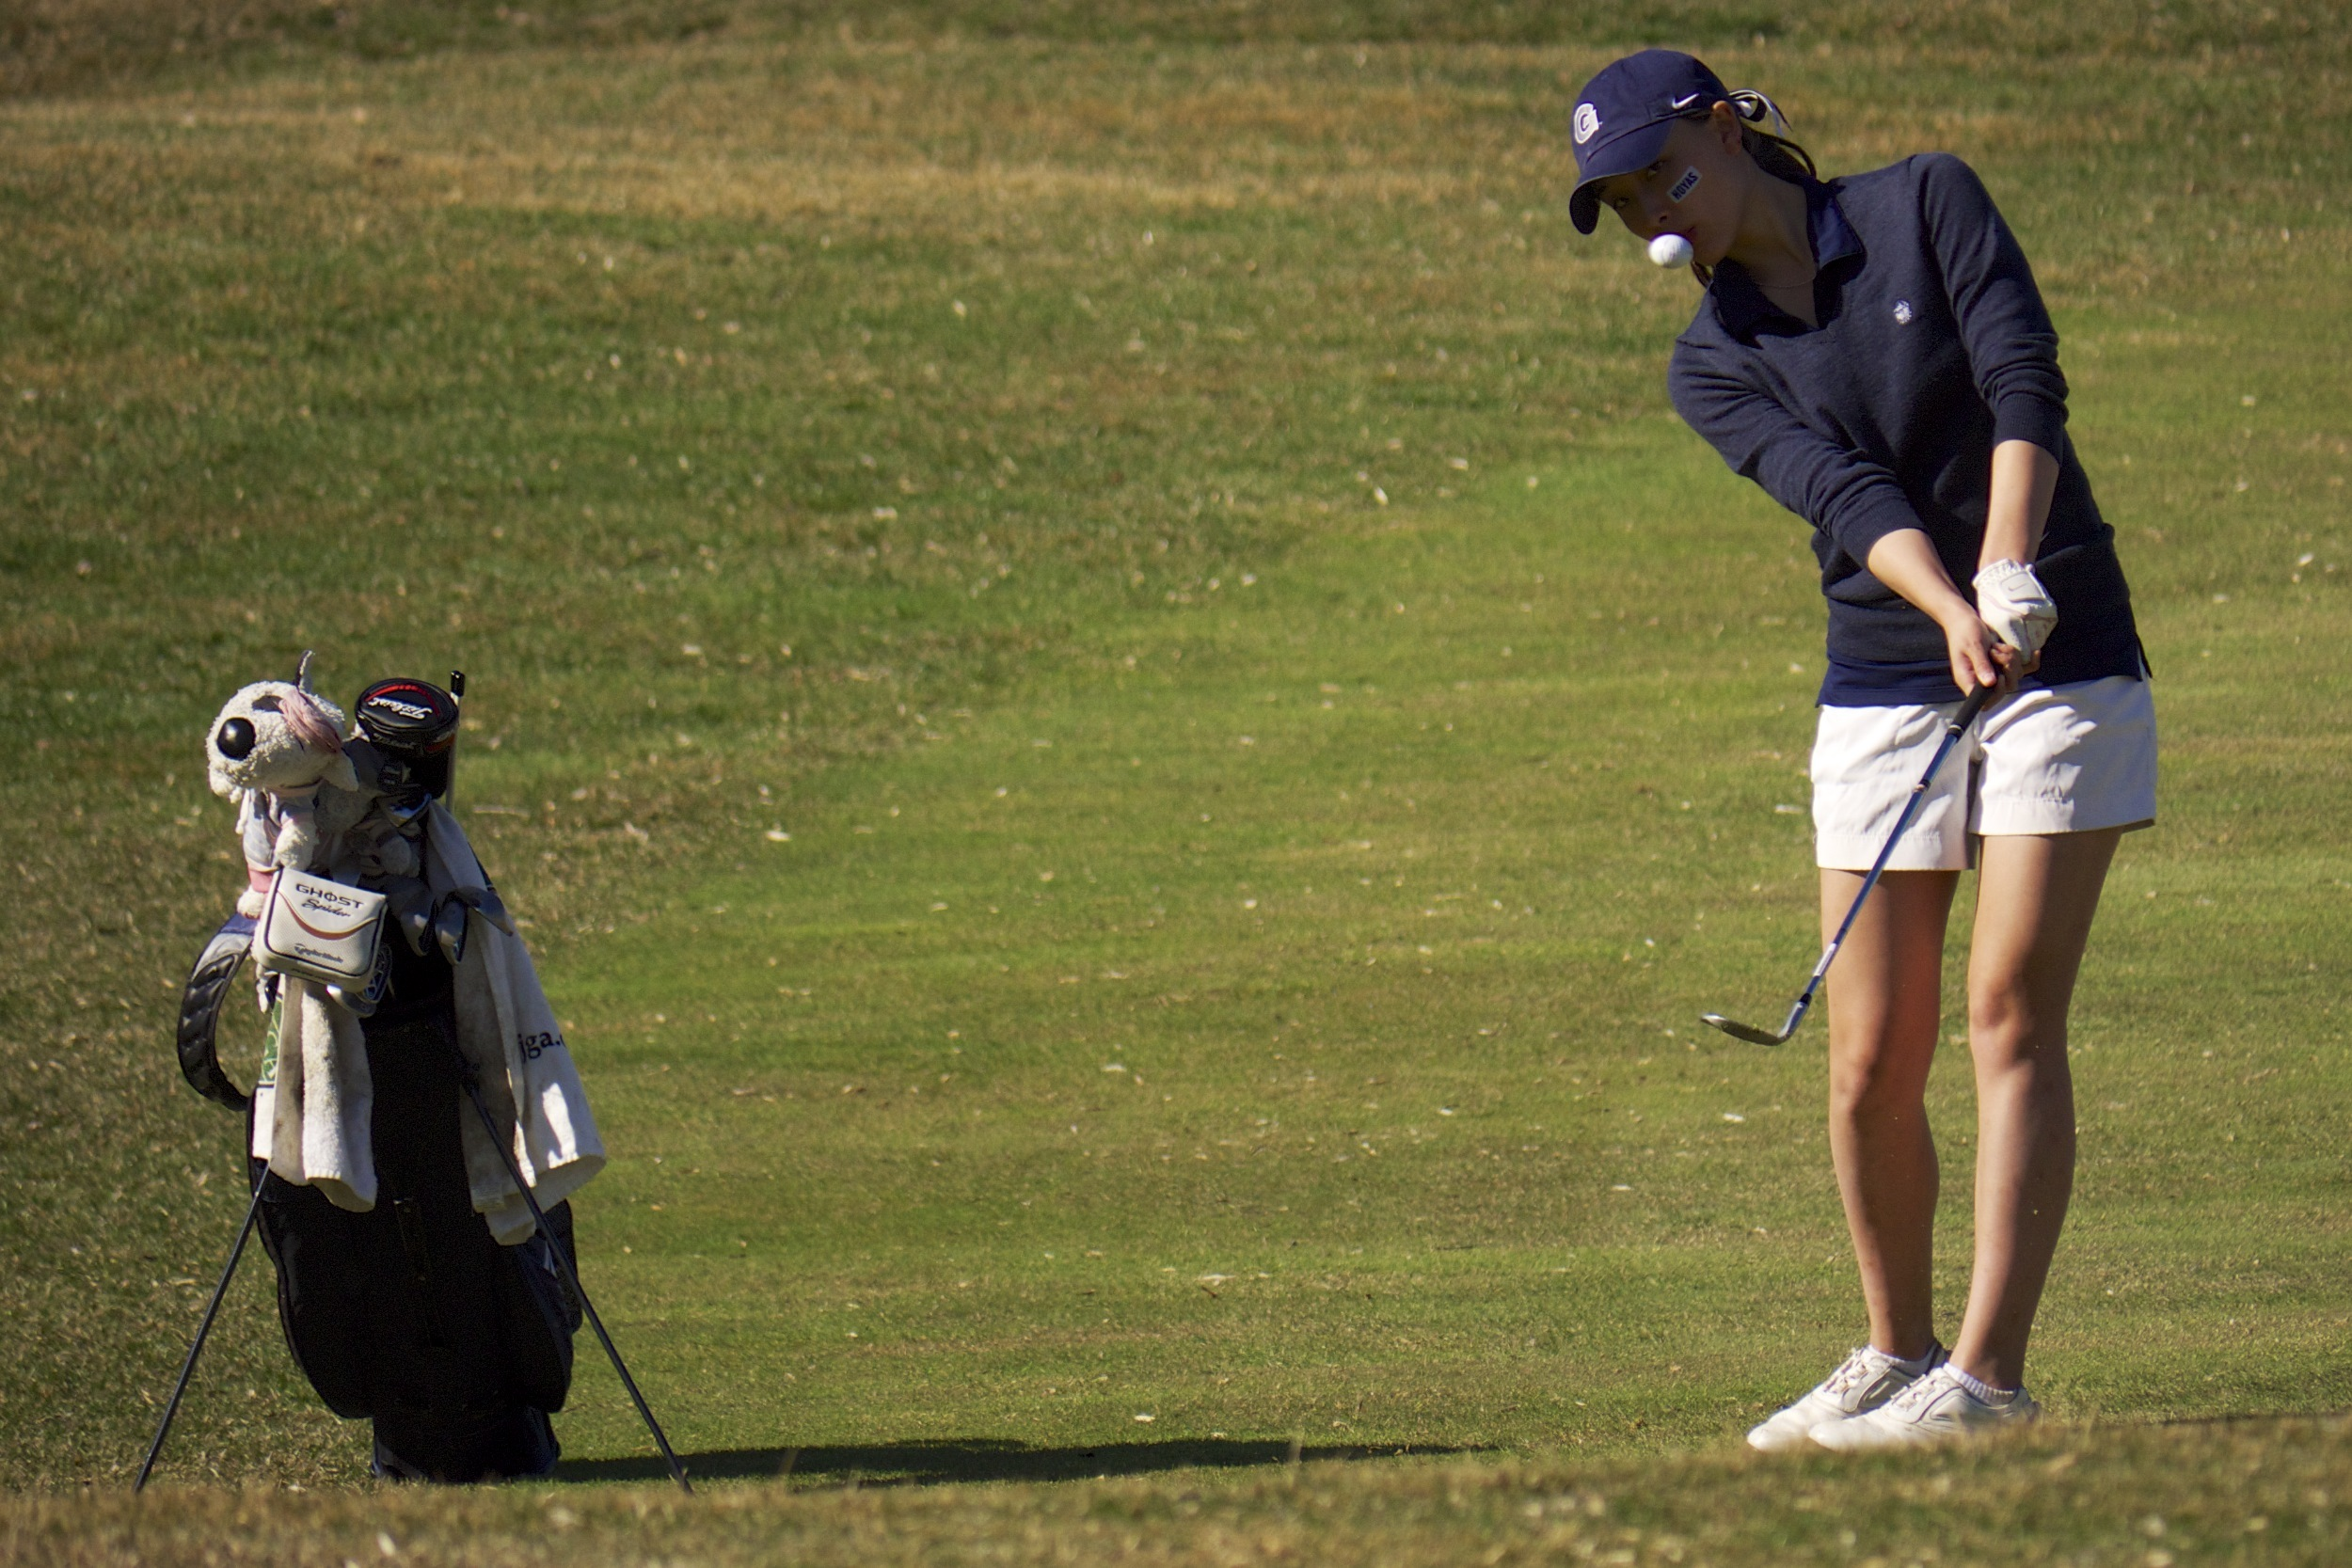 Georgetown is in ninth place after the first day of play at the Hoya Invitational.